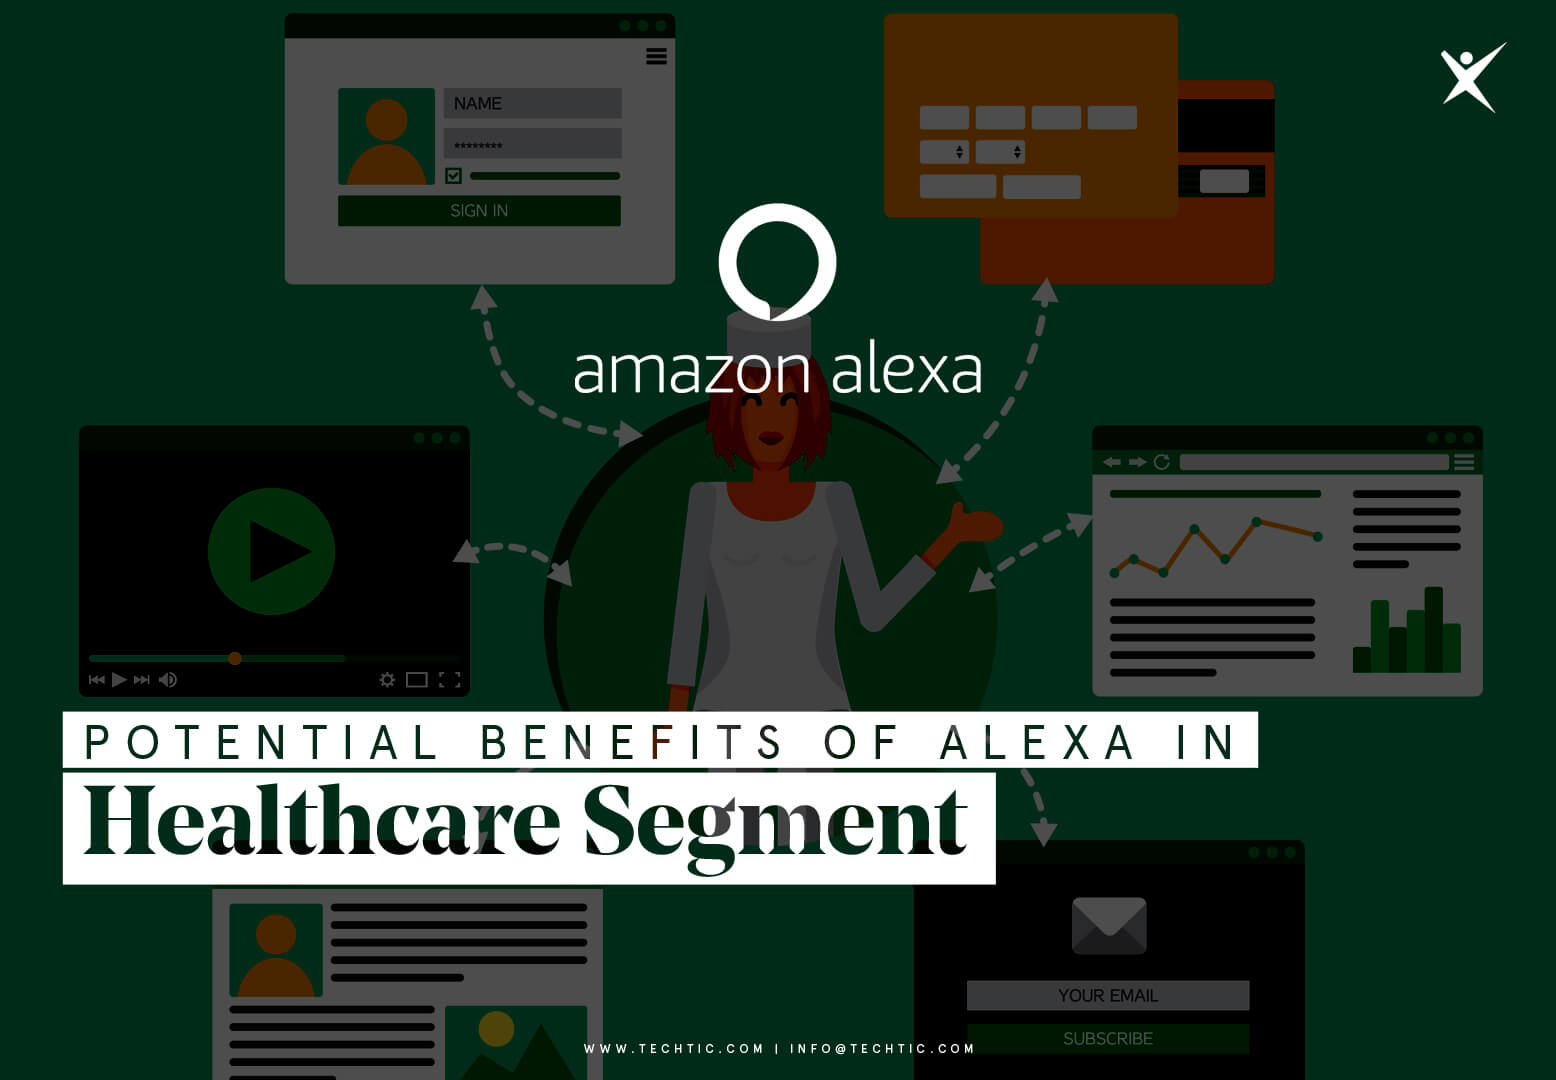 Potential benefits of Alexa in healthcare segment